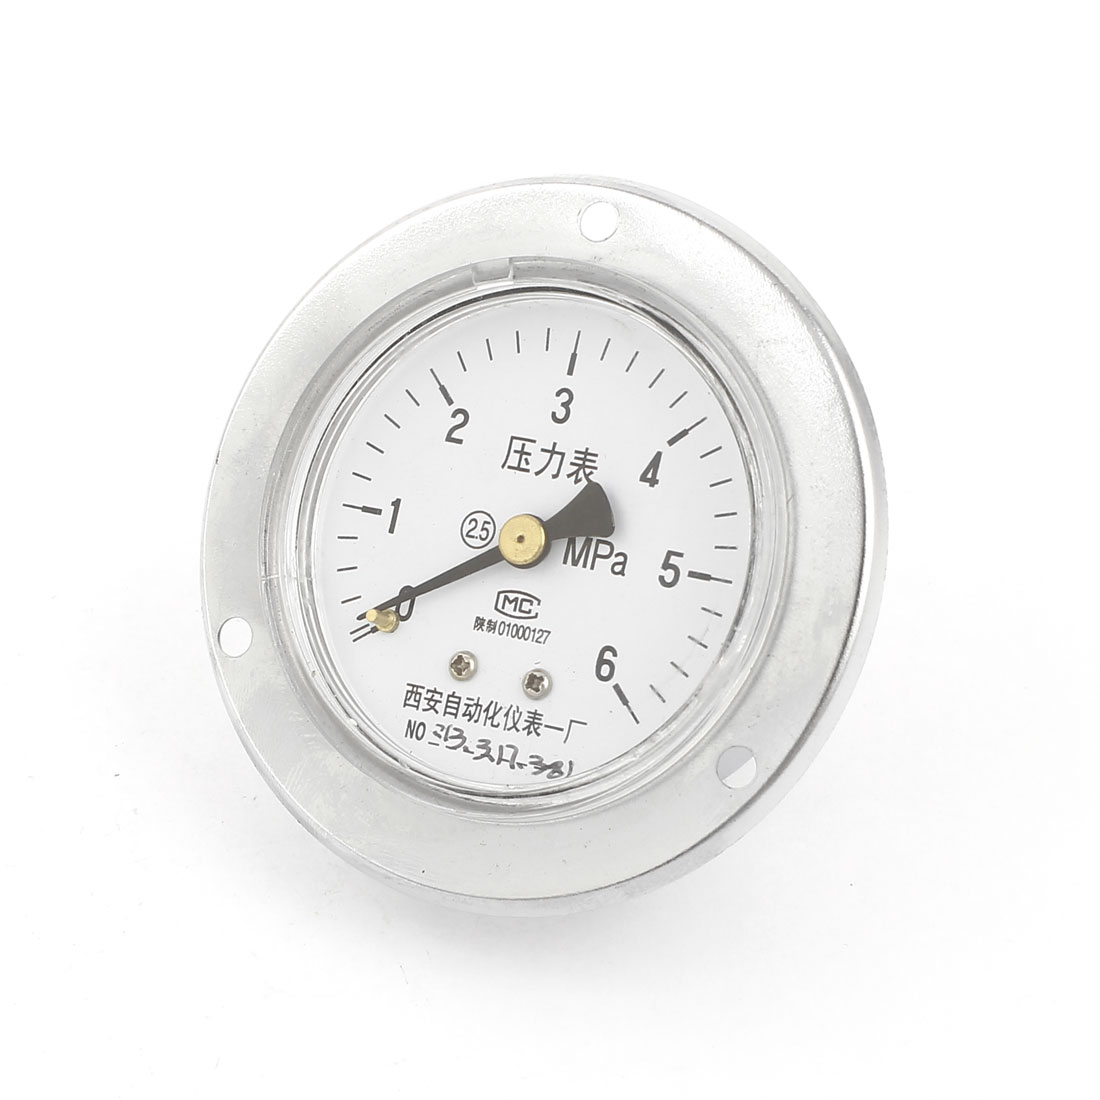 0-6MPa Vertical Mechanical Glow Oil Gas Air Vacuum Pressure Meter Gauge 60mm